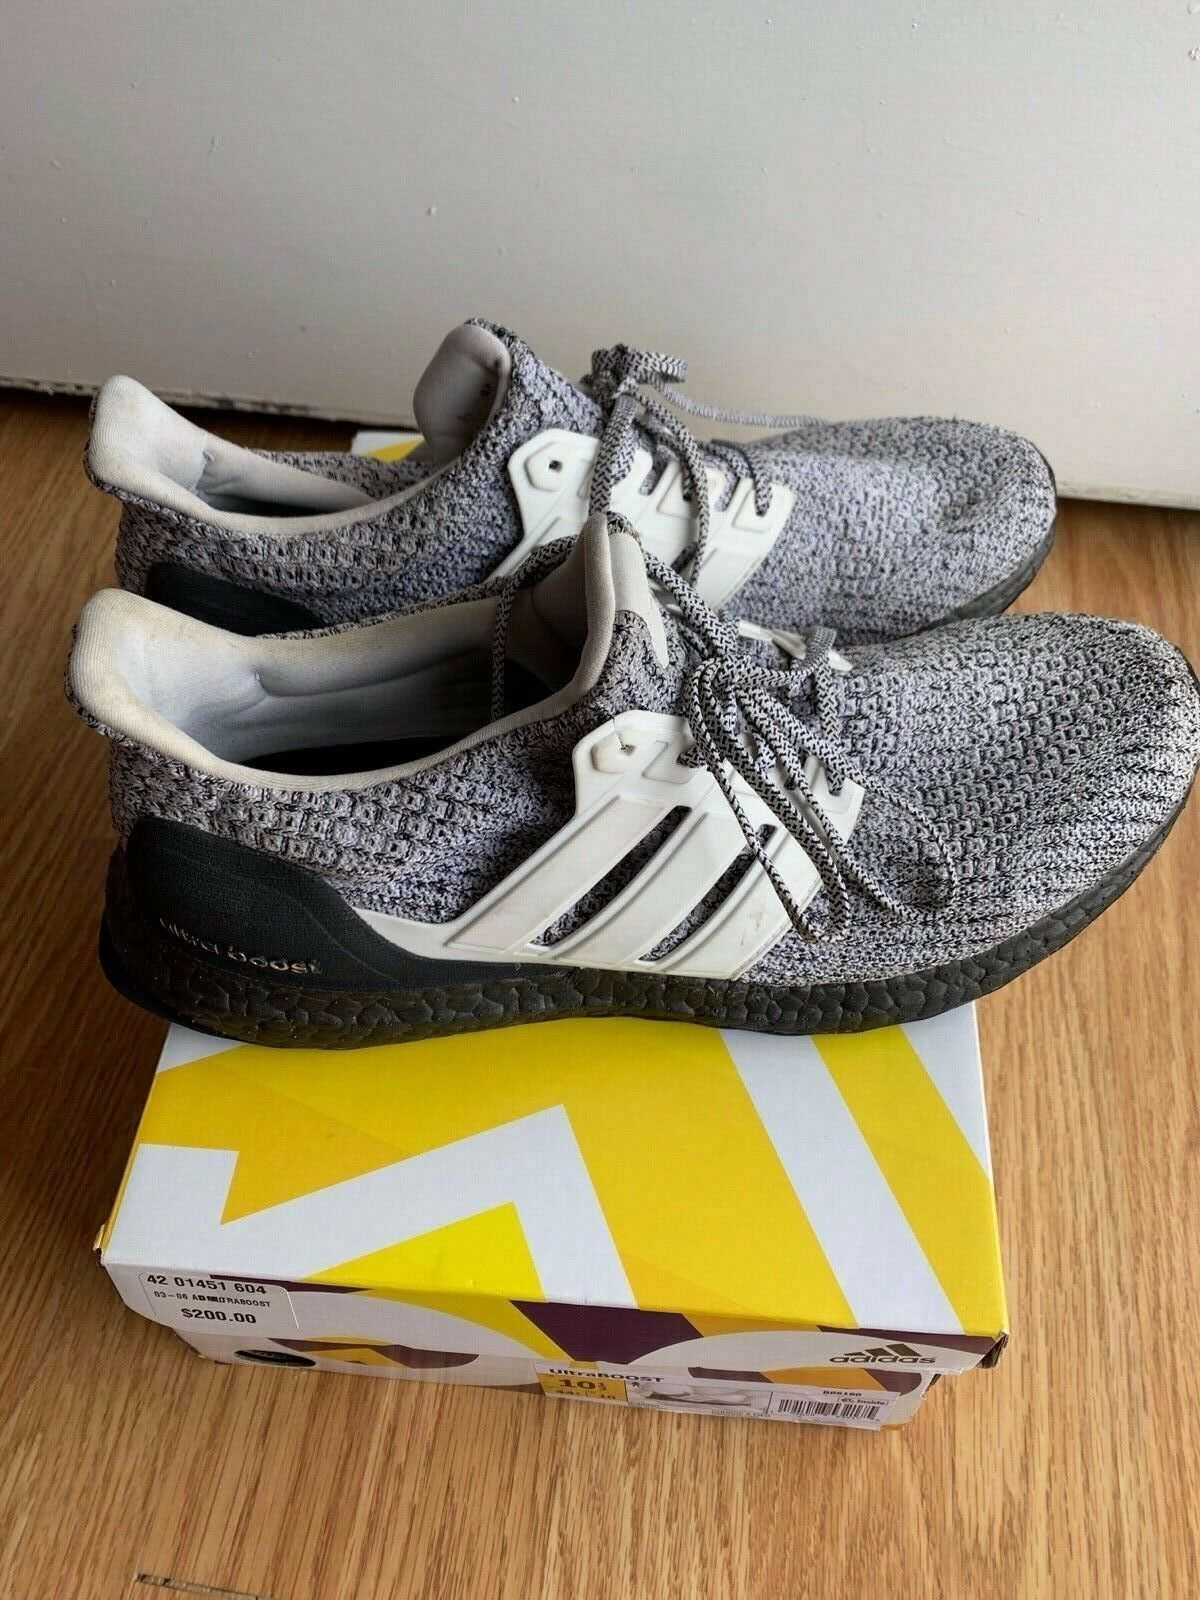 467023c2f6a Adidas Ultra BOOST 4.0 Oreo BB6180 Cookies and Cream LTD Men s Size 10.5 US